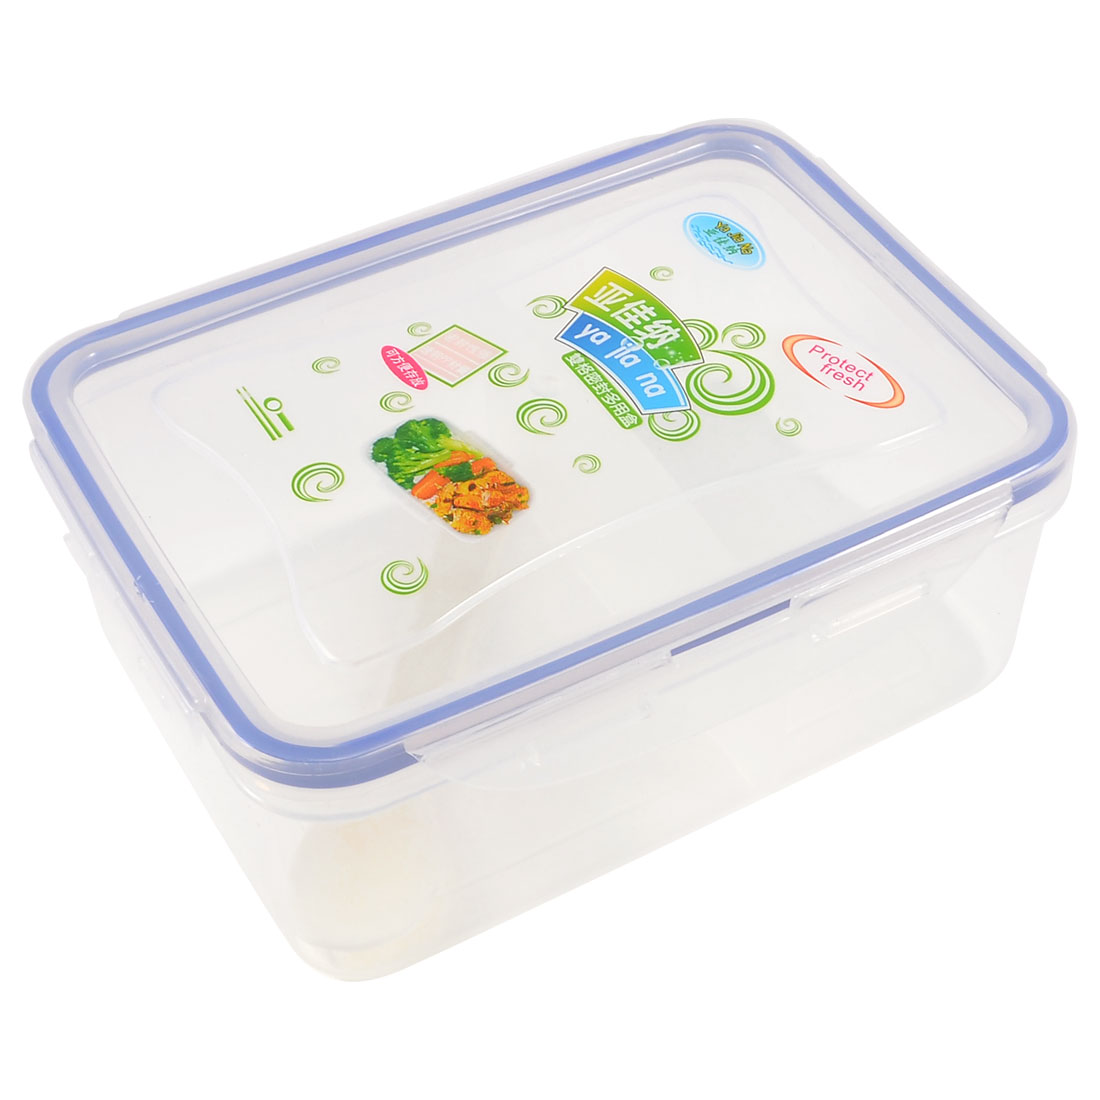 Blue Clear Two Compartment Inside Lunch Box Food Container Crisper w Spoon